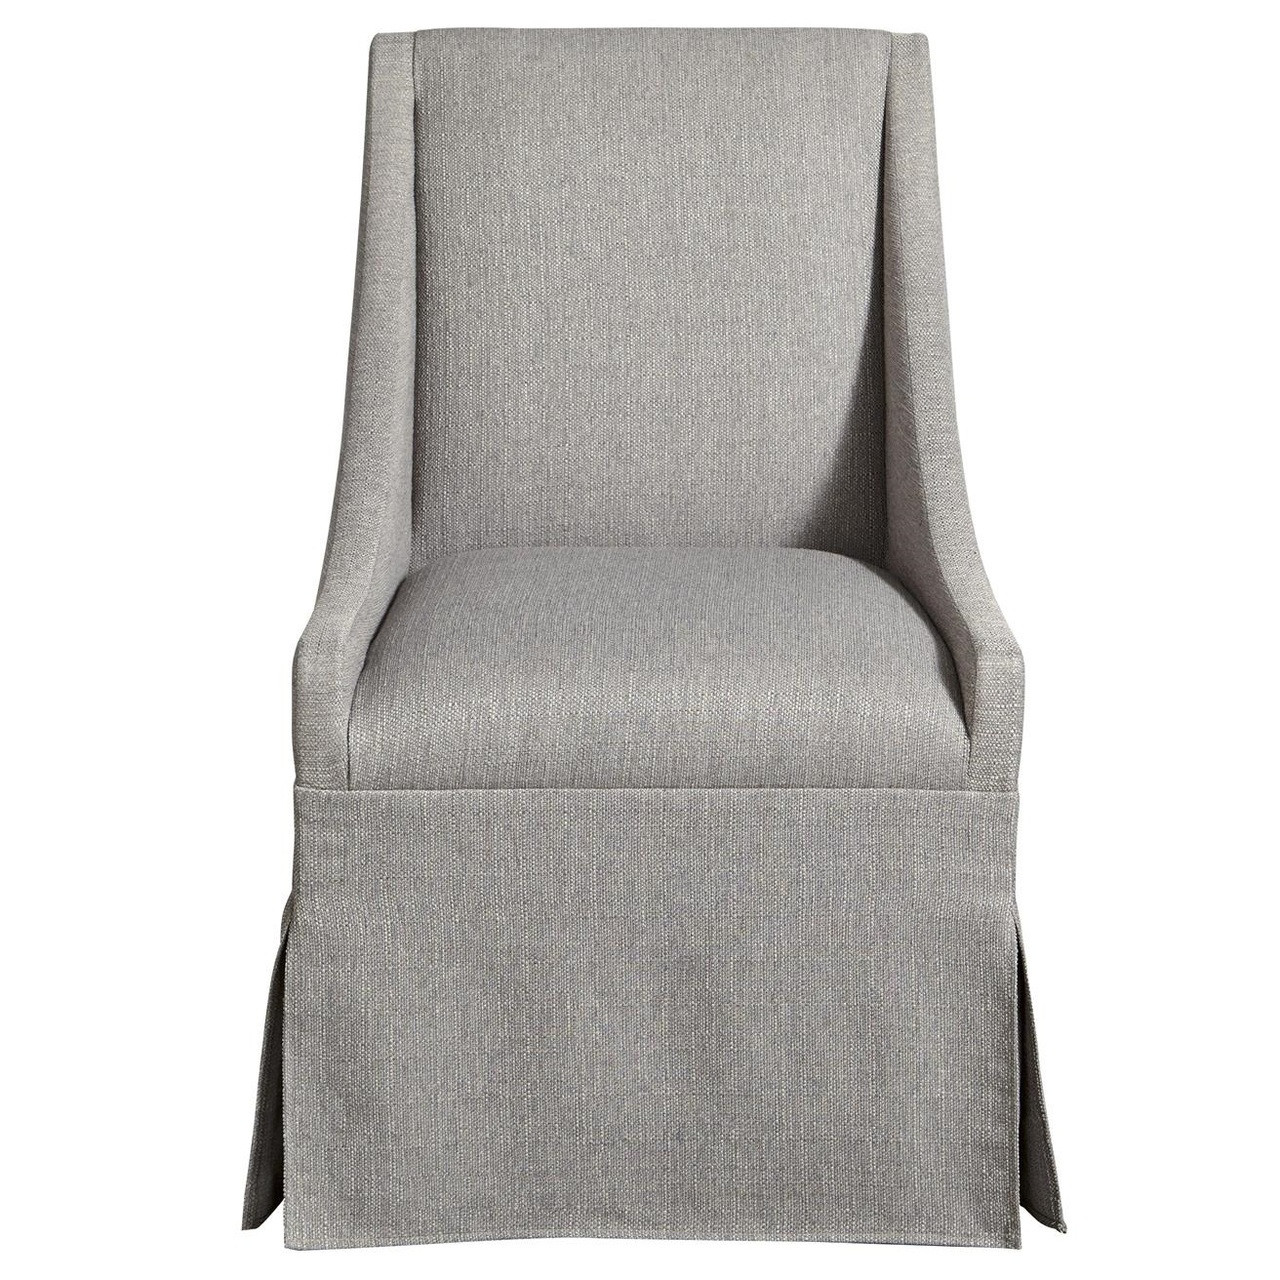 bedroom chair with skirt gym high street tv townsend modern grey upholstered skirted dining